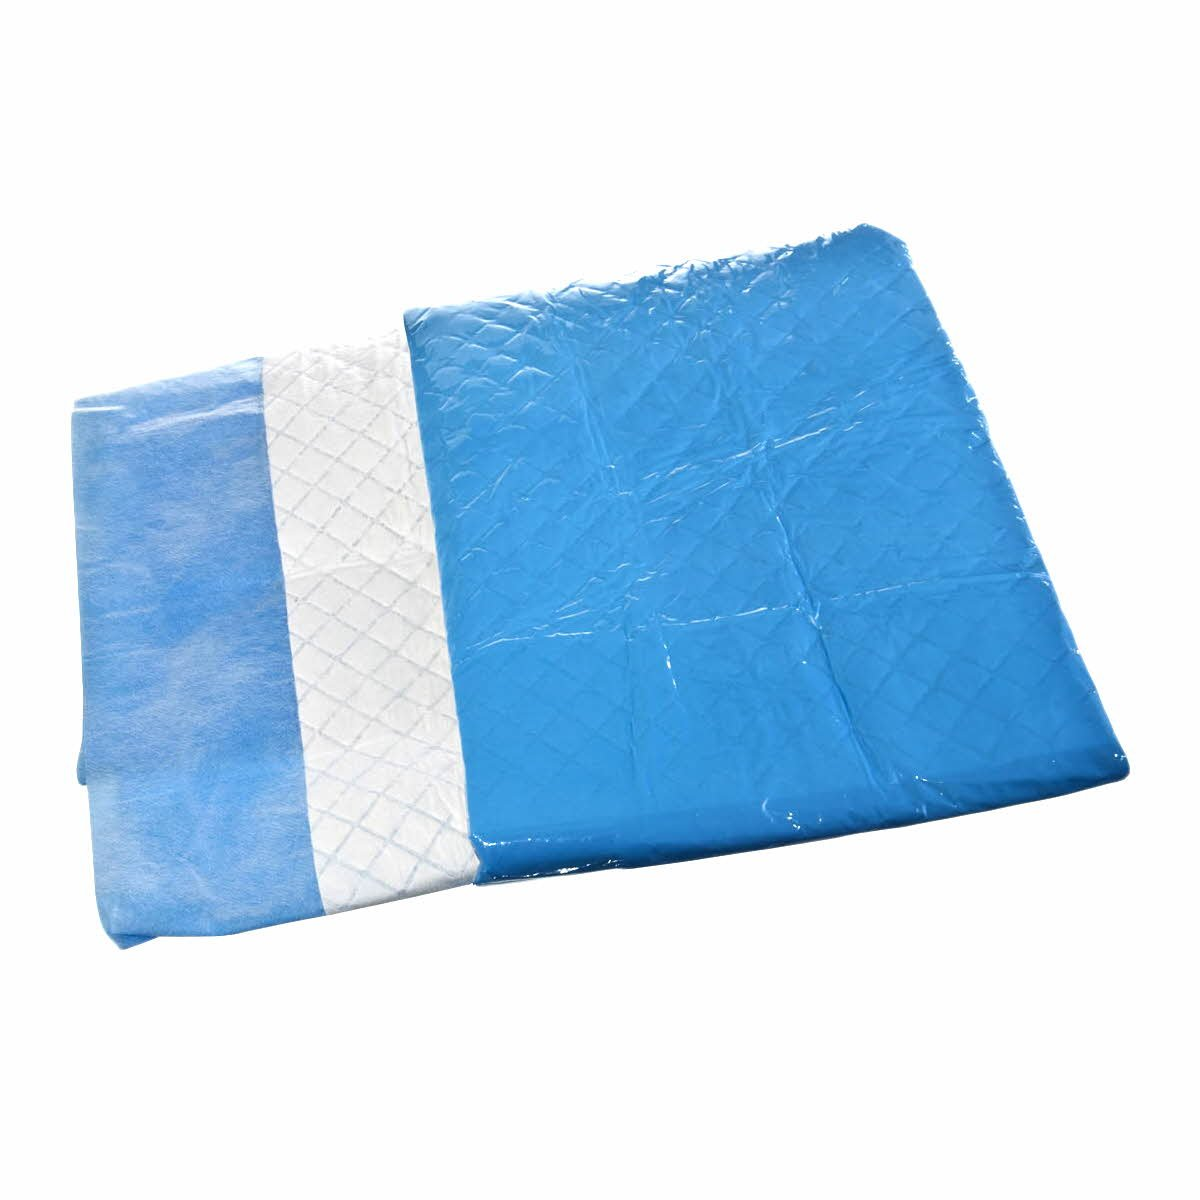 Medline DYND4030SB Absorbent Surgical Table Cover Sheets, 40'' x 30'', Blue/White (Pack of 40)